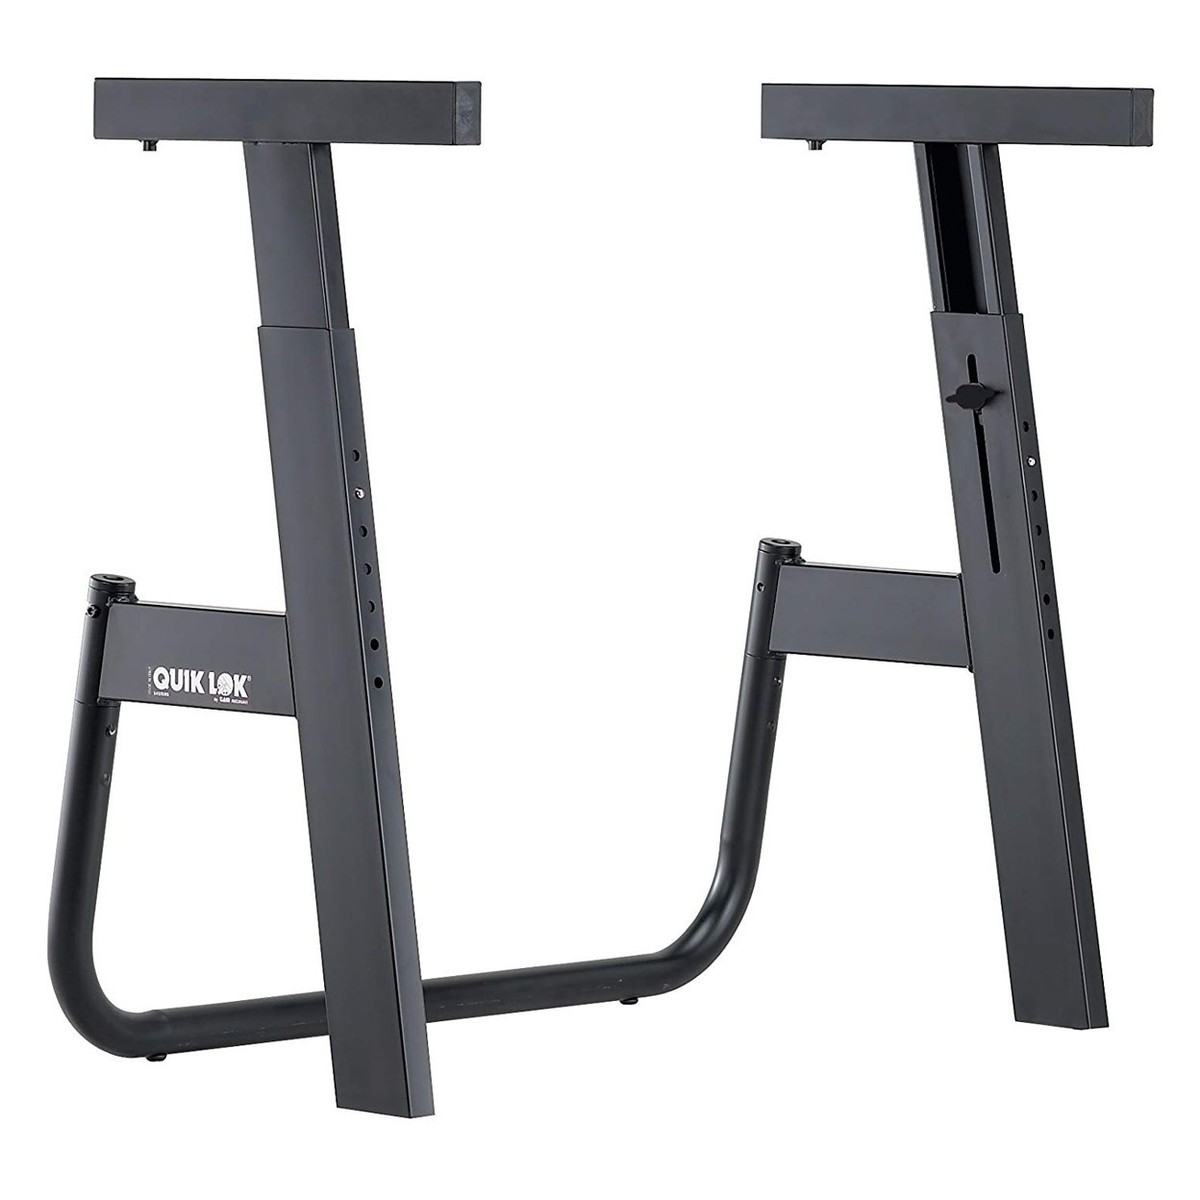 Click to view product details and reviews for Quiklok M 91 Monolith Single Tier Keyboard Stand.